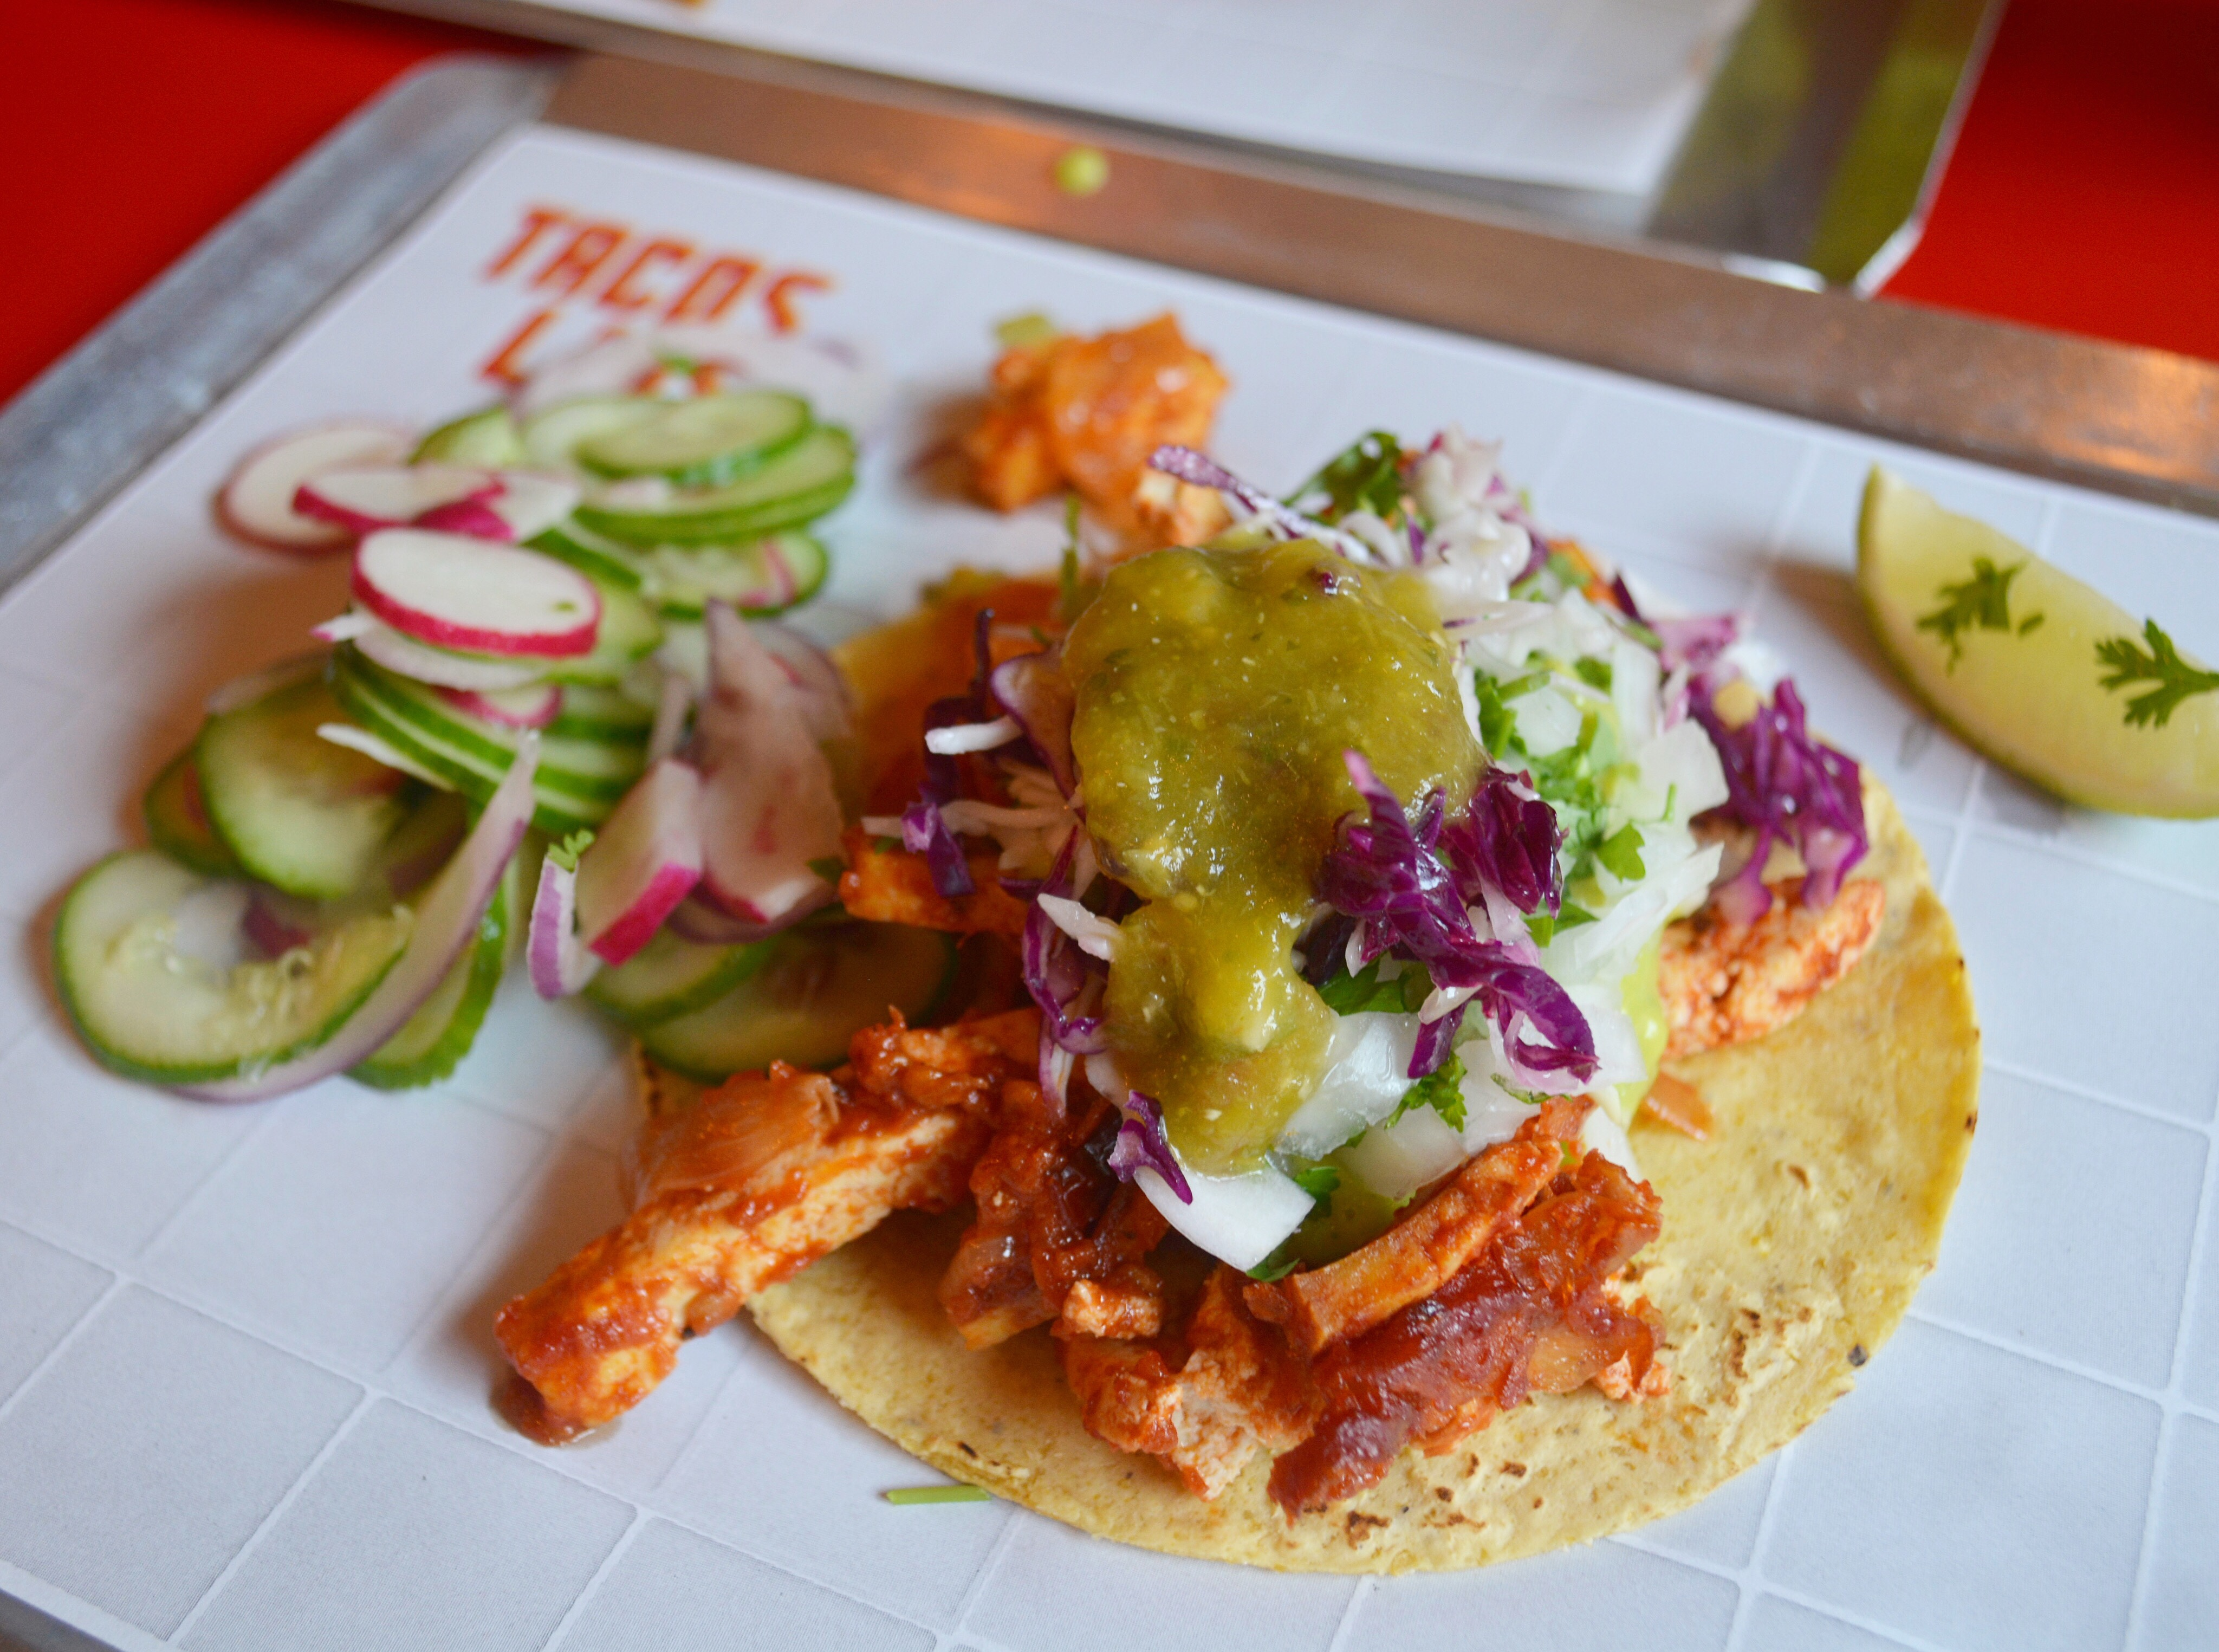 Vegetarian Tacos from Taco's Luis